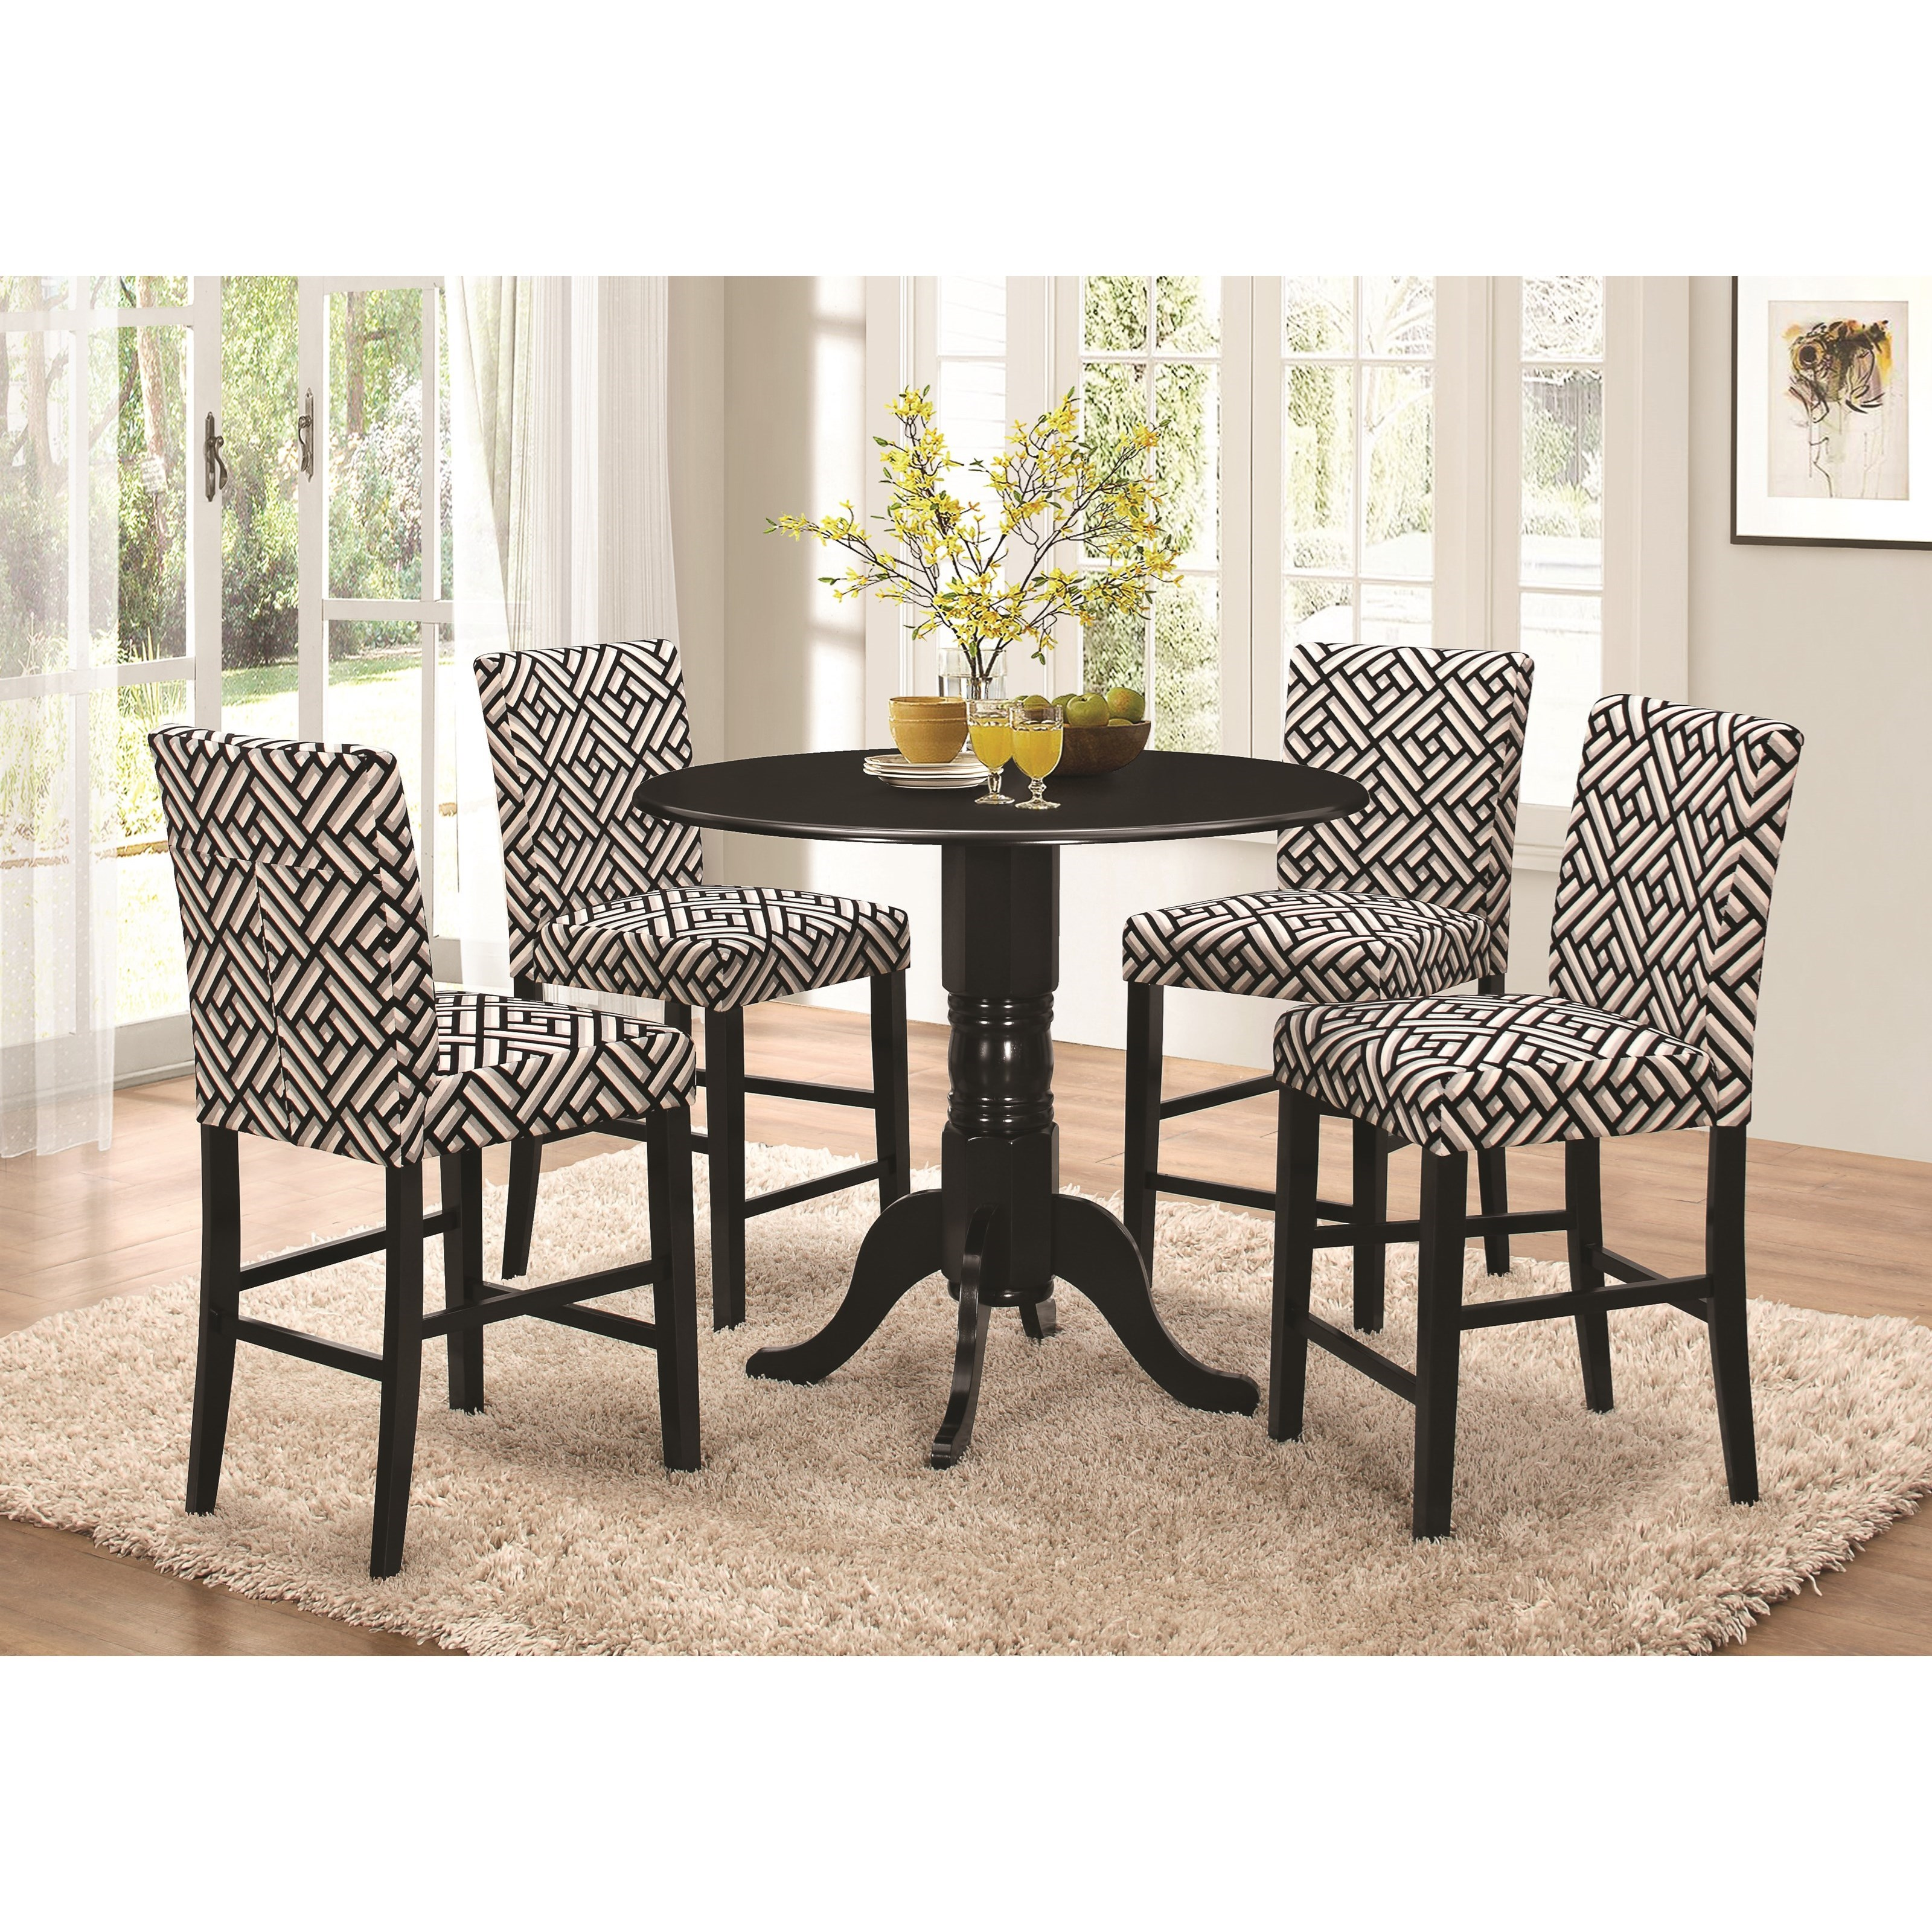 Coaster Allston Counter Height Dining Set   Item Number: 106768+4x106769